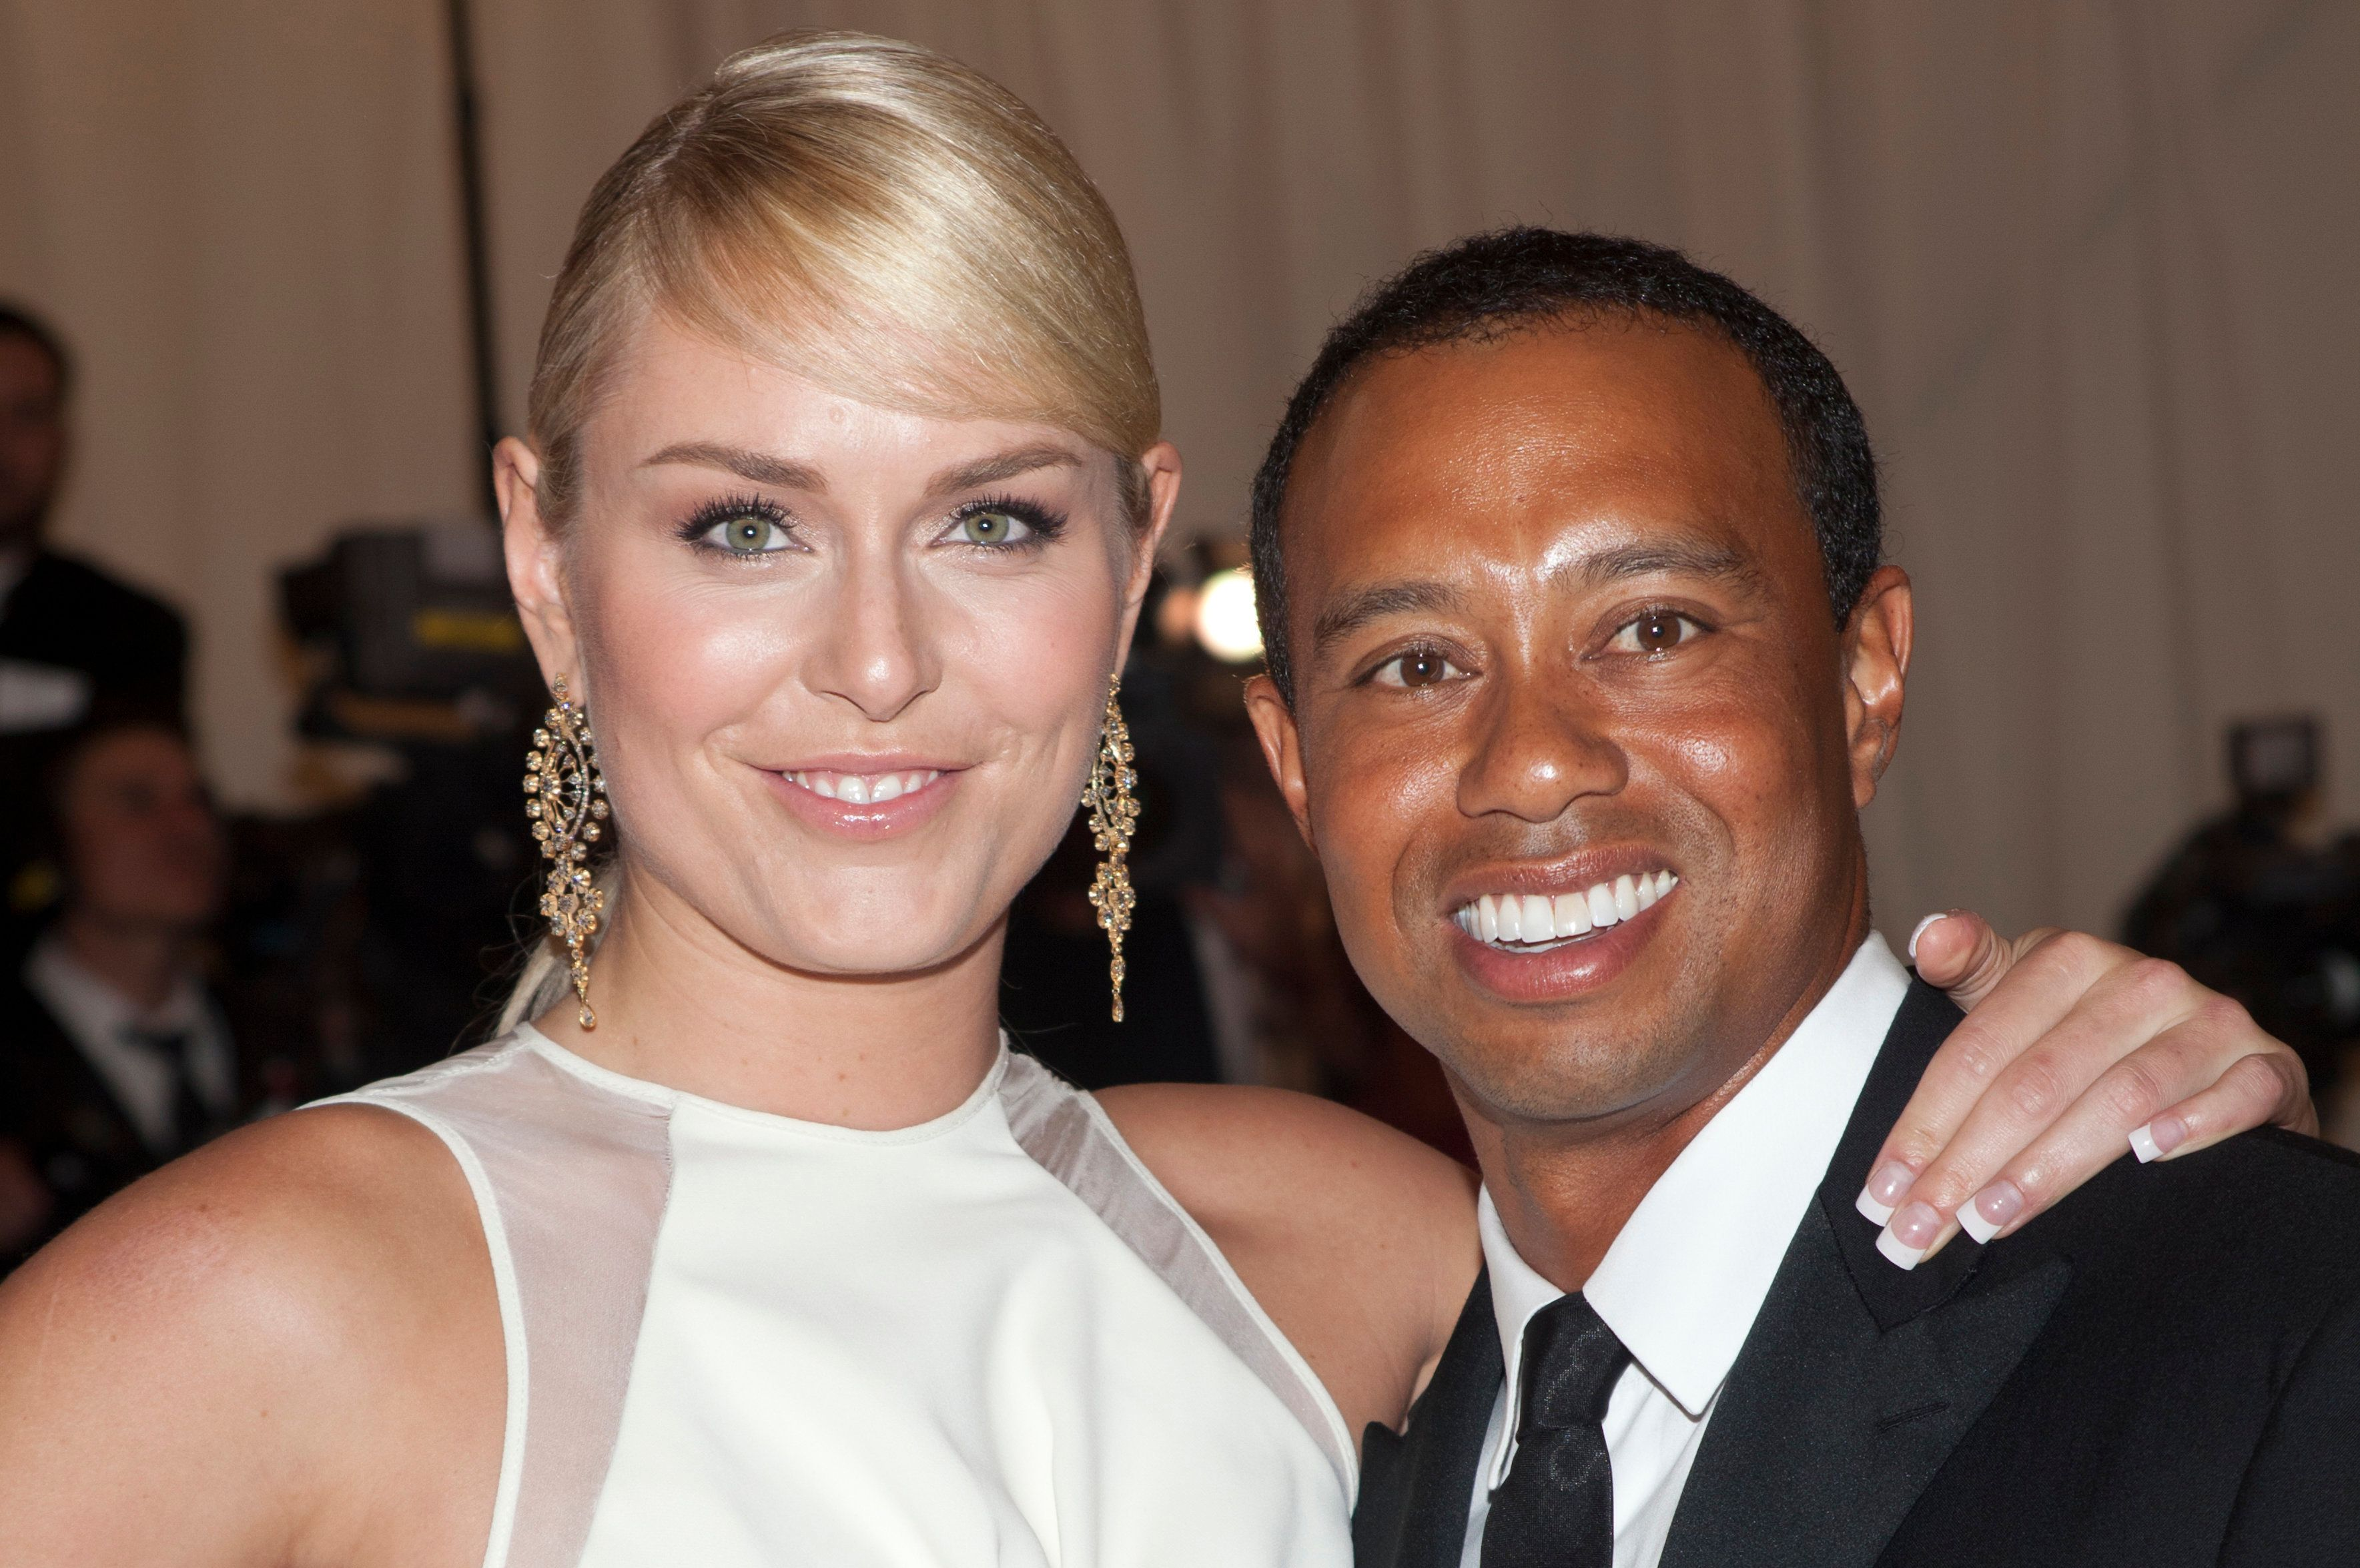 pictures Tiger Woods Wife Elin Planning To Sleep With Other Golfers